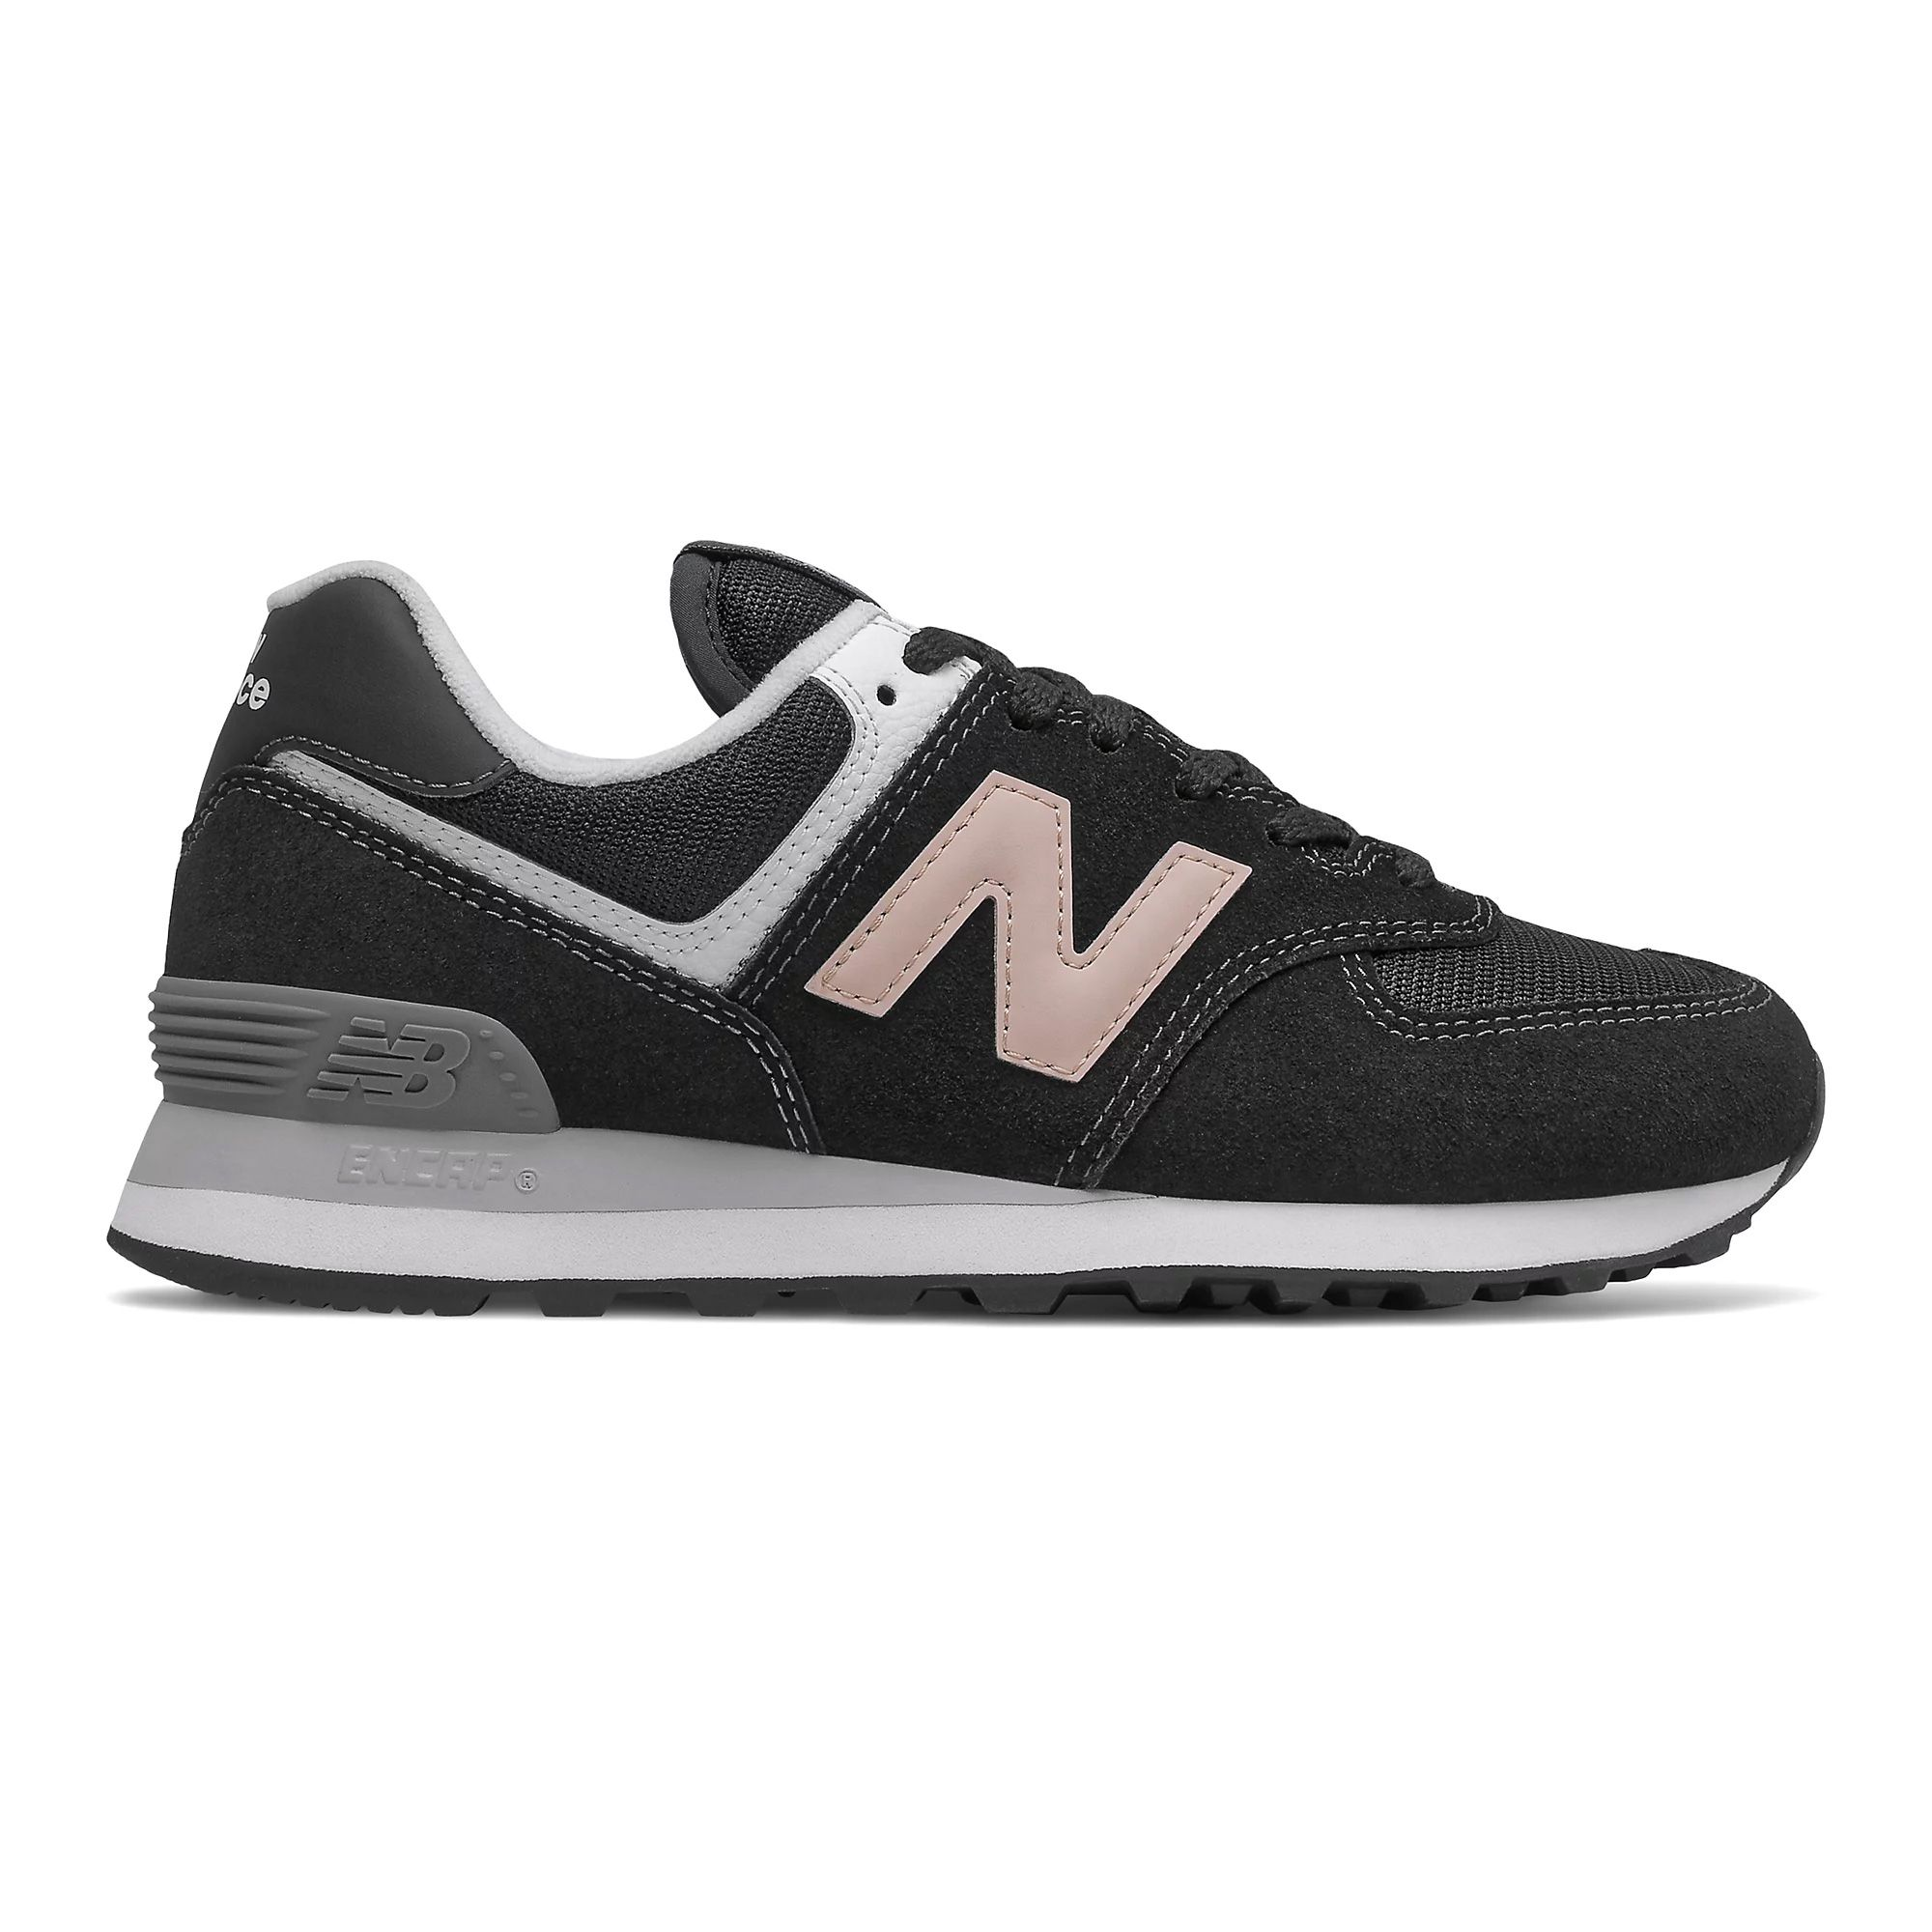 New Balance Women's 574 in Black/Oyster Pink